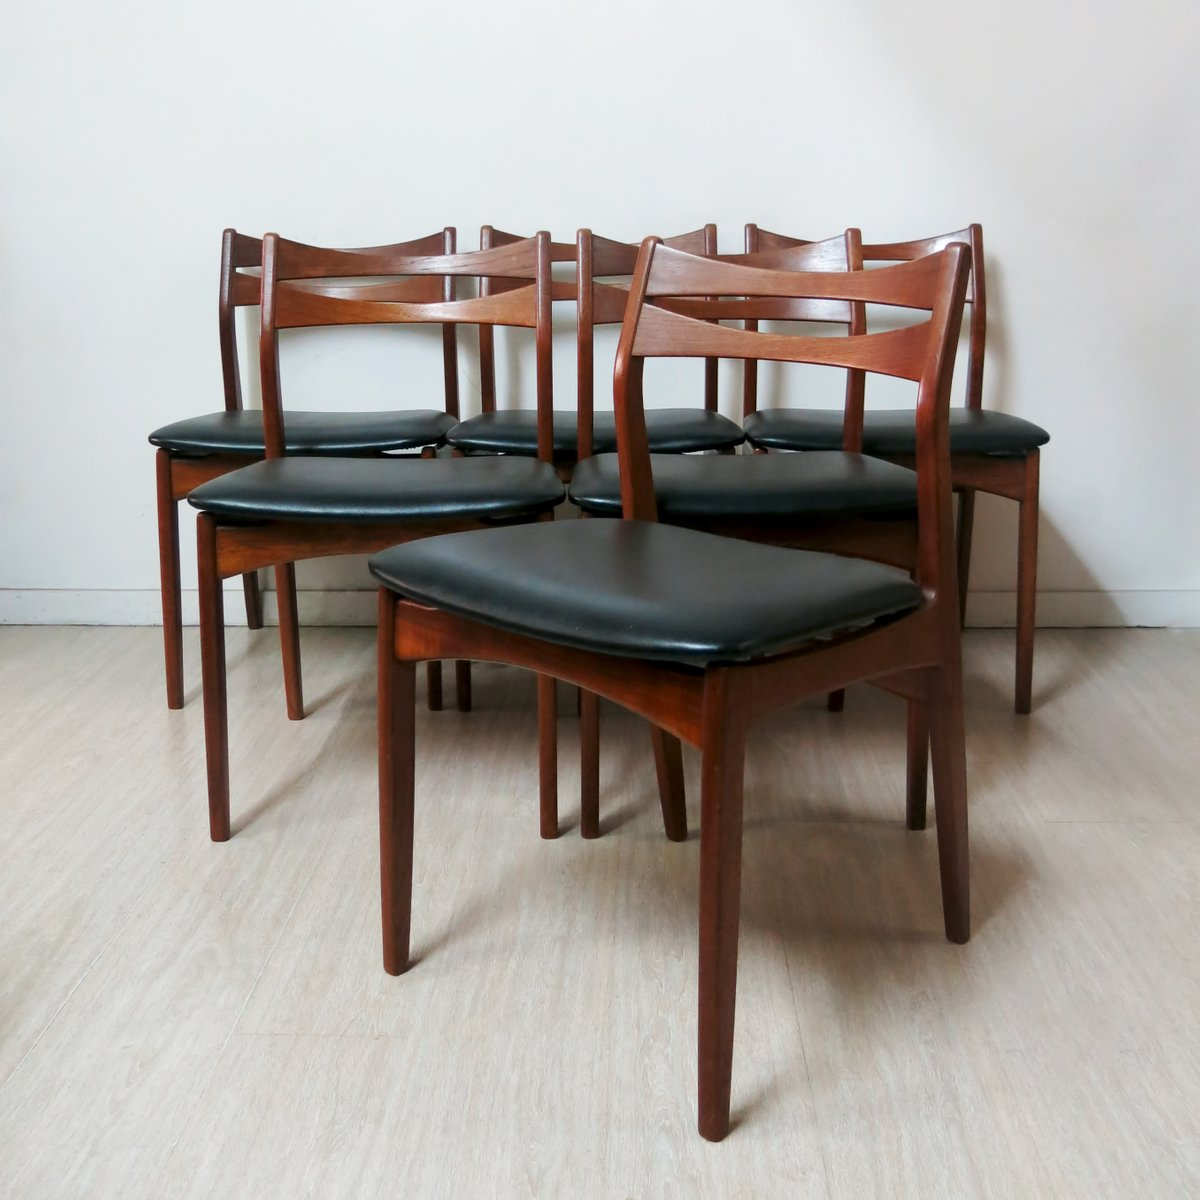 Vintage Danish Dining Chairs By Linneberg 1960s